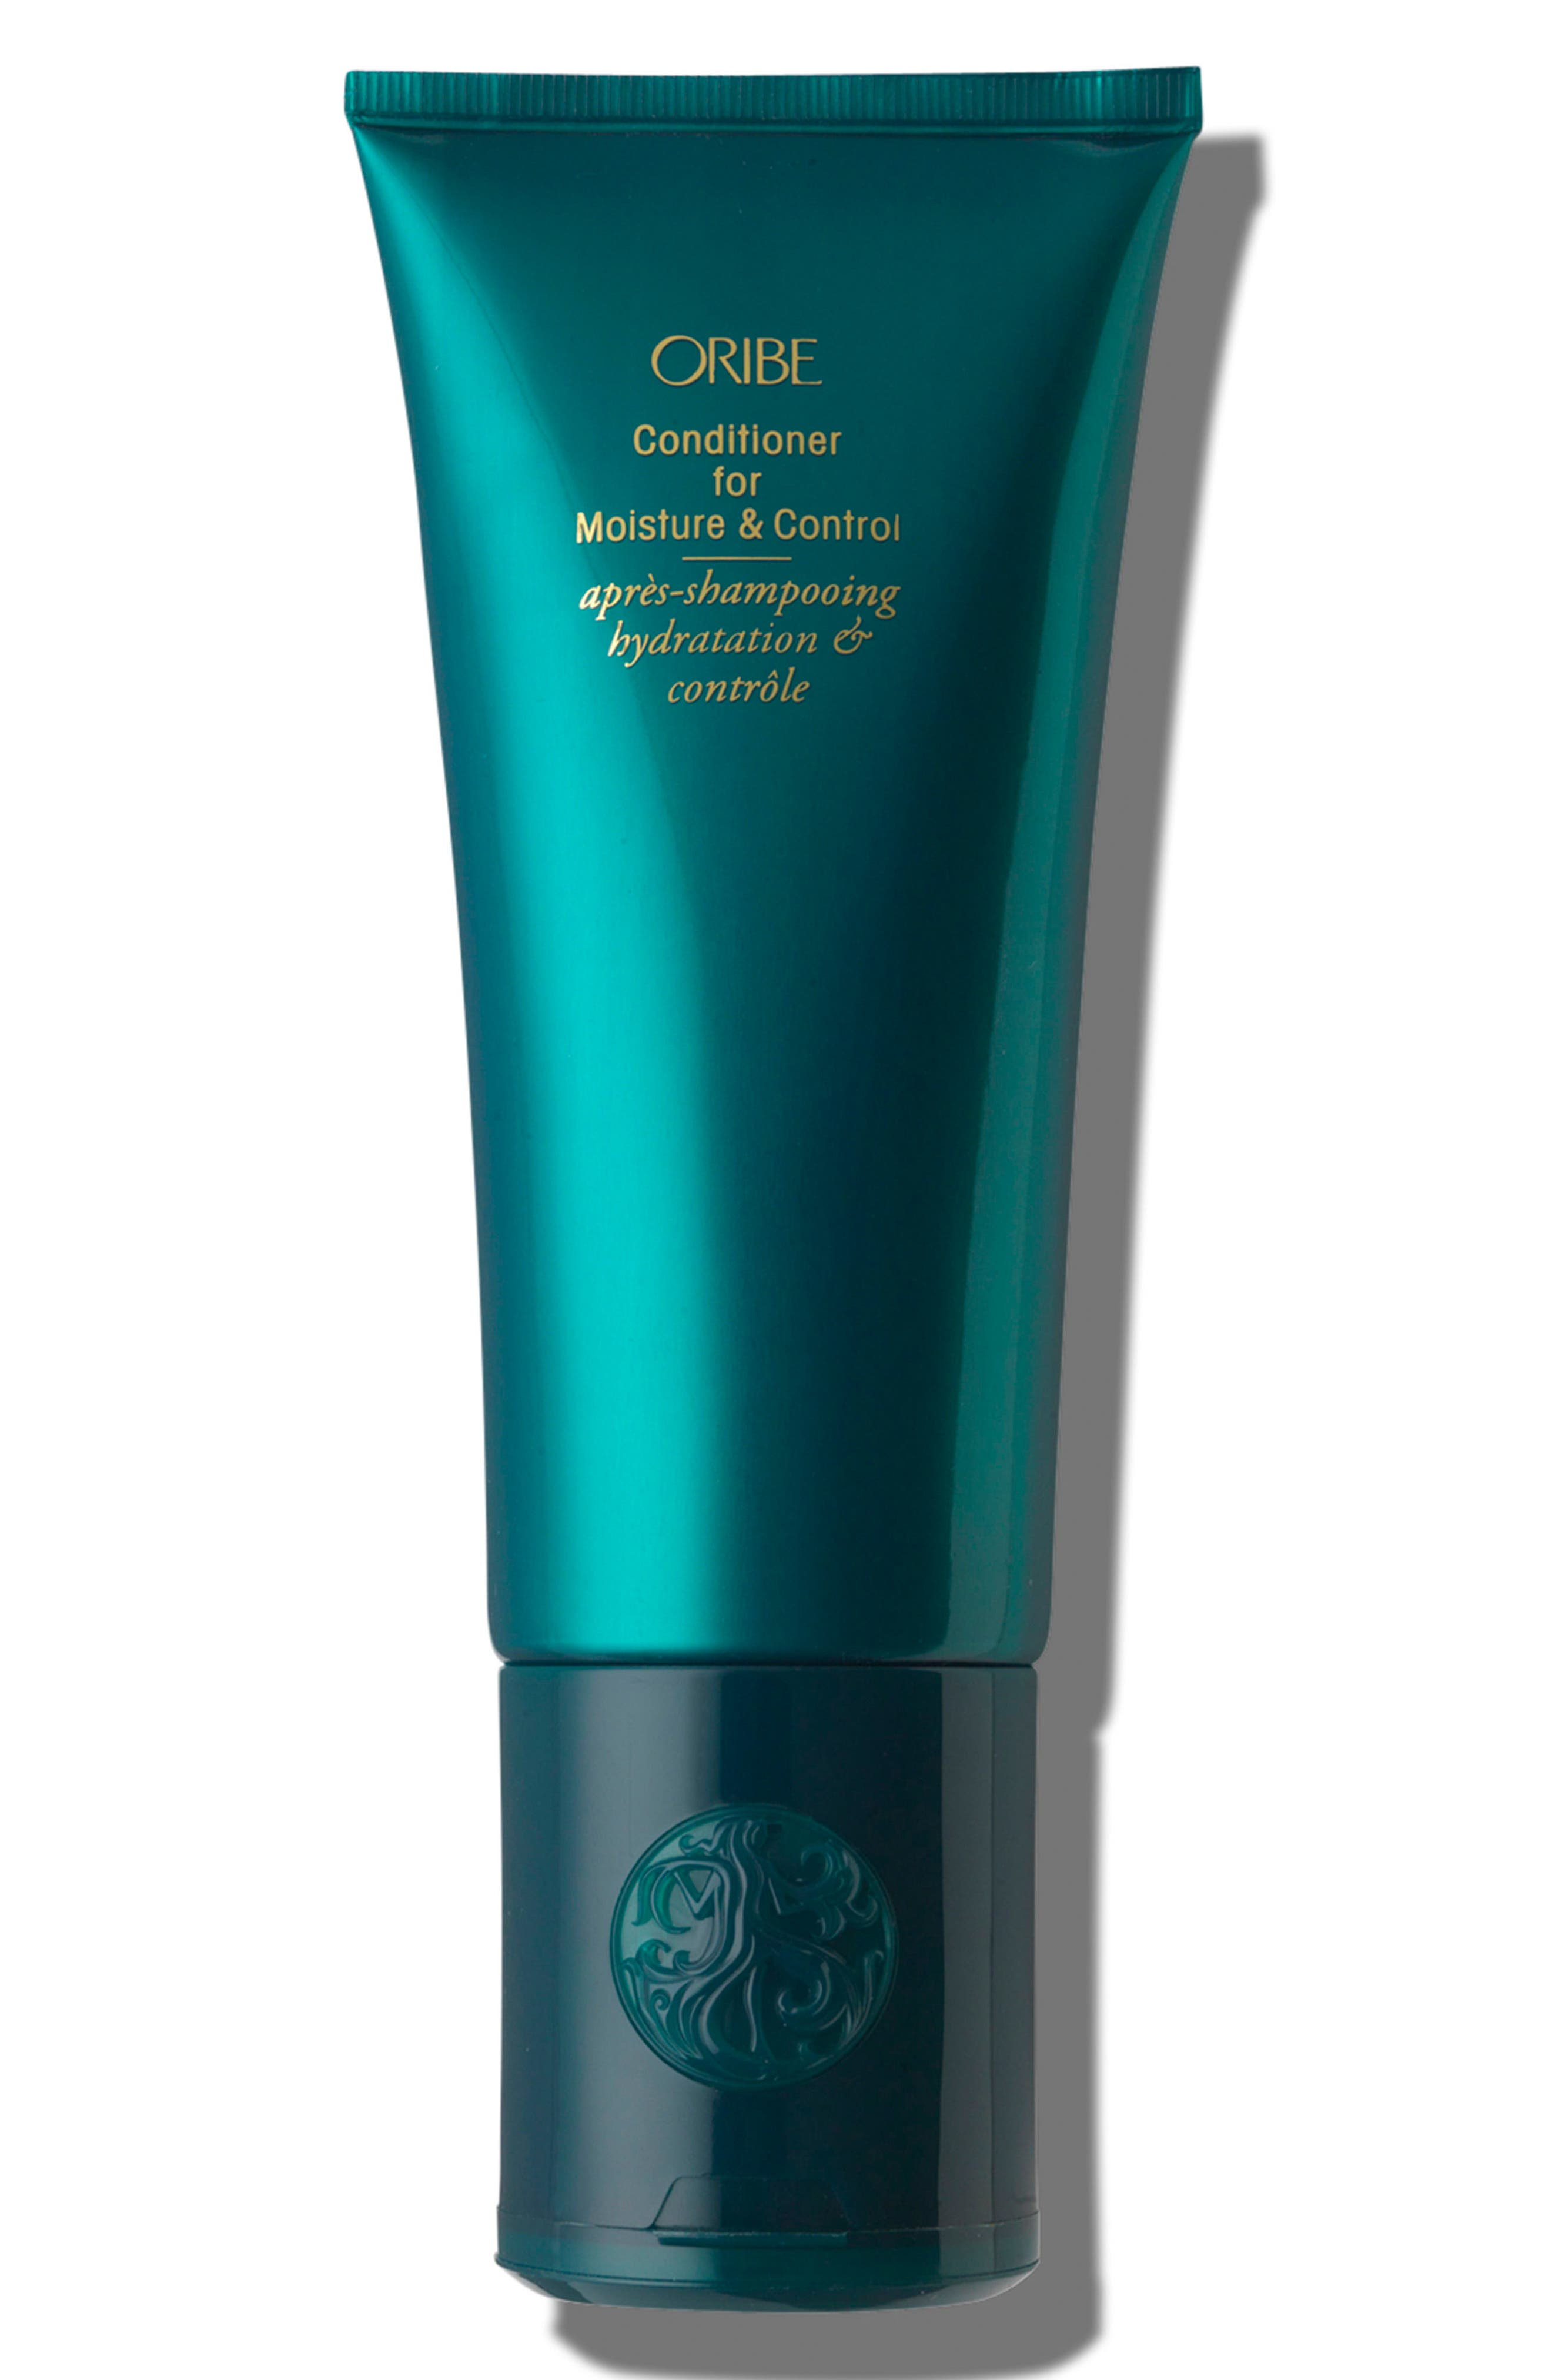 ORIBE SPACE.NK.apothecary Oribe Conditioner for Moisture Control, Main, color, 000